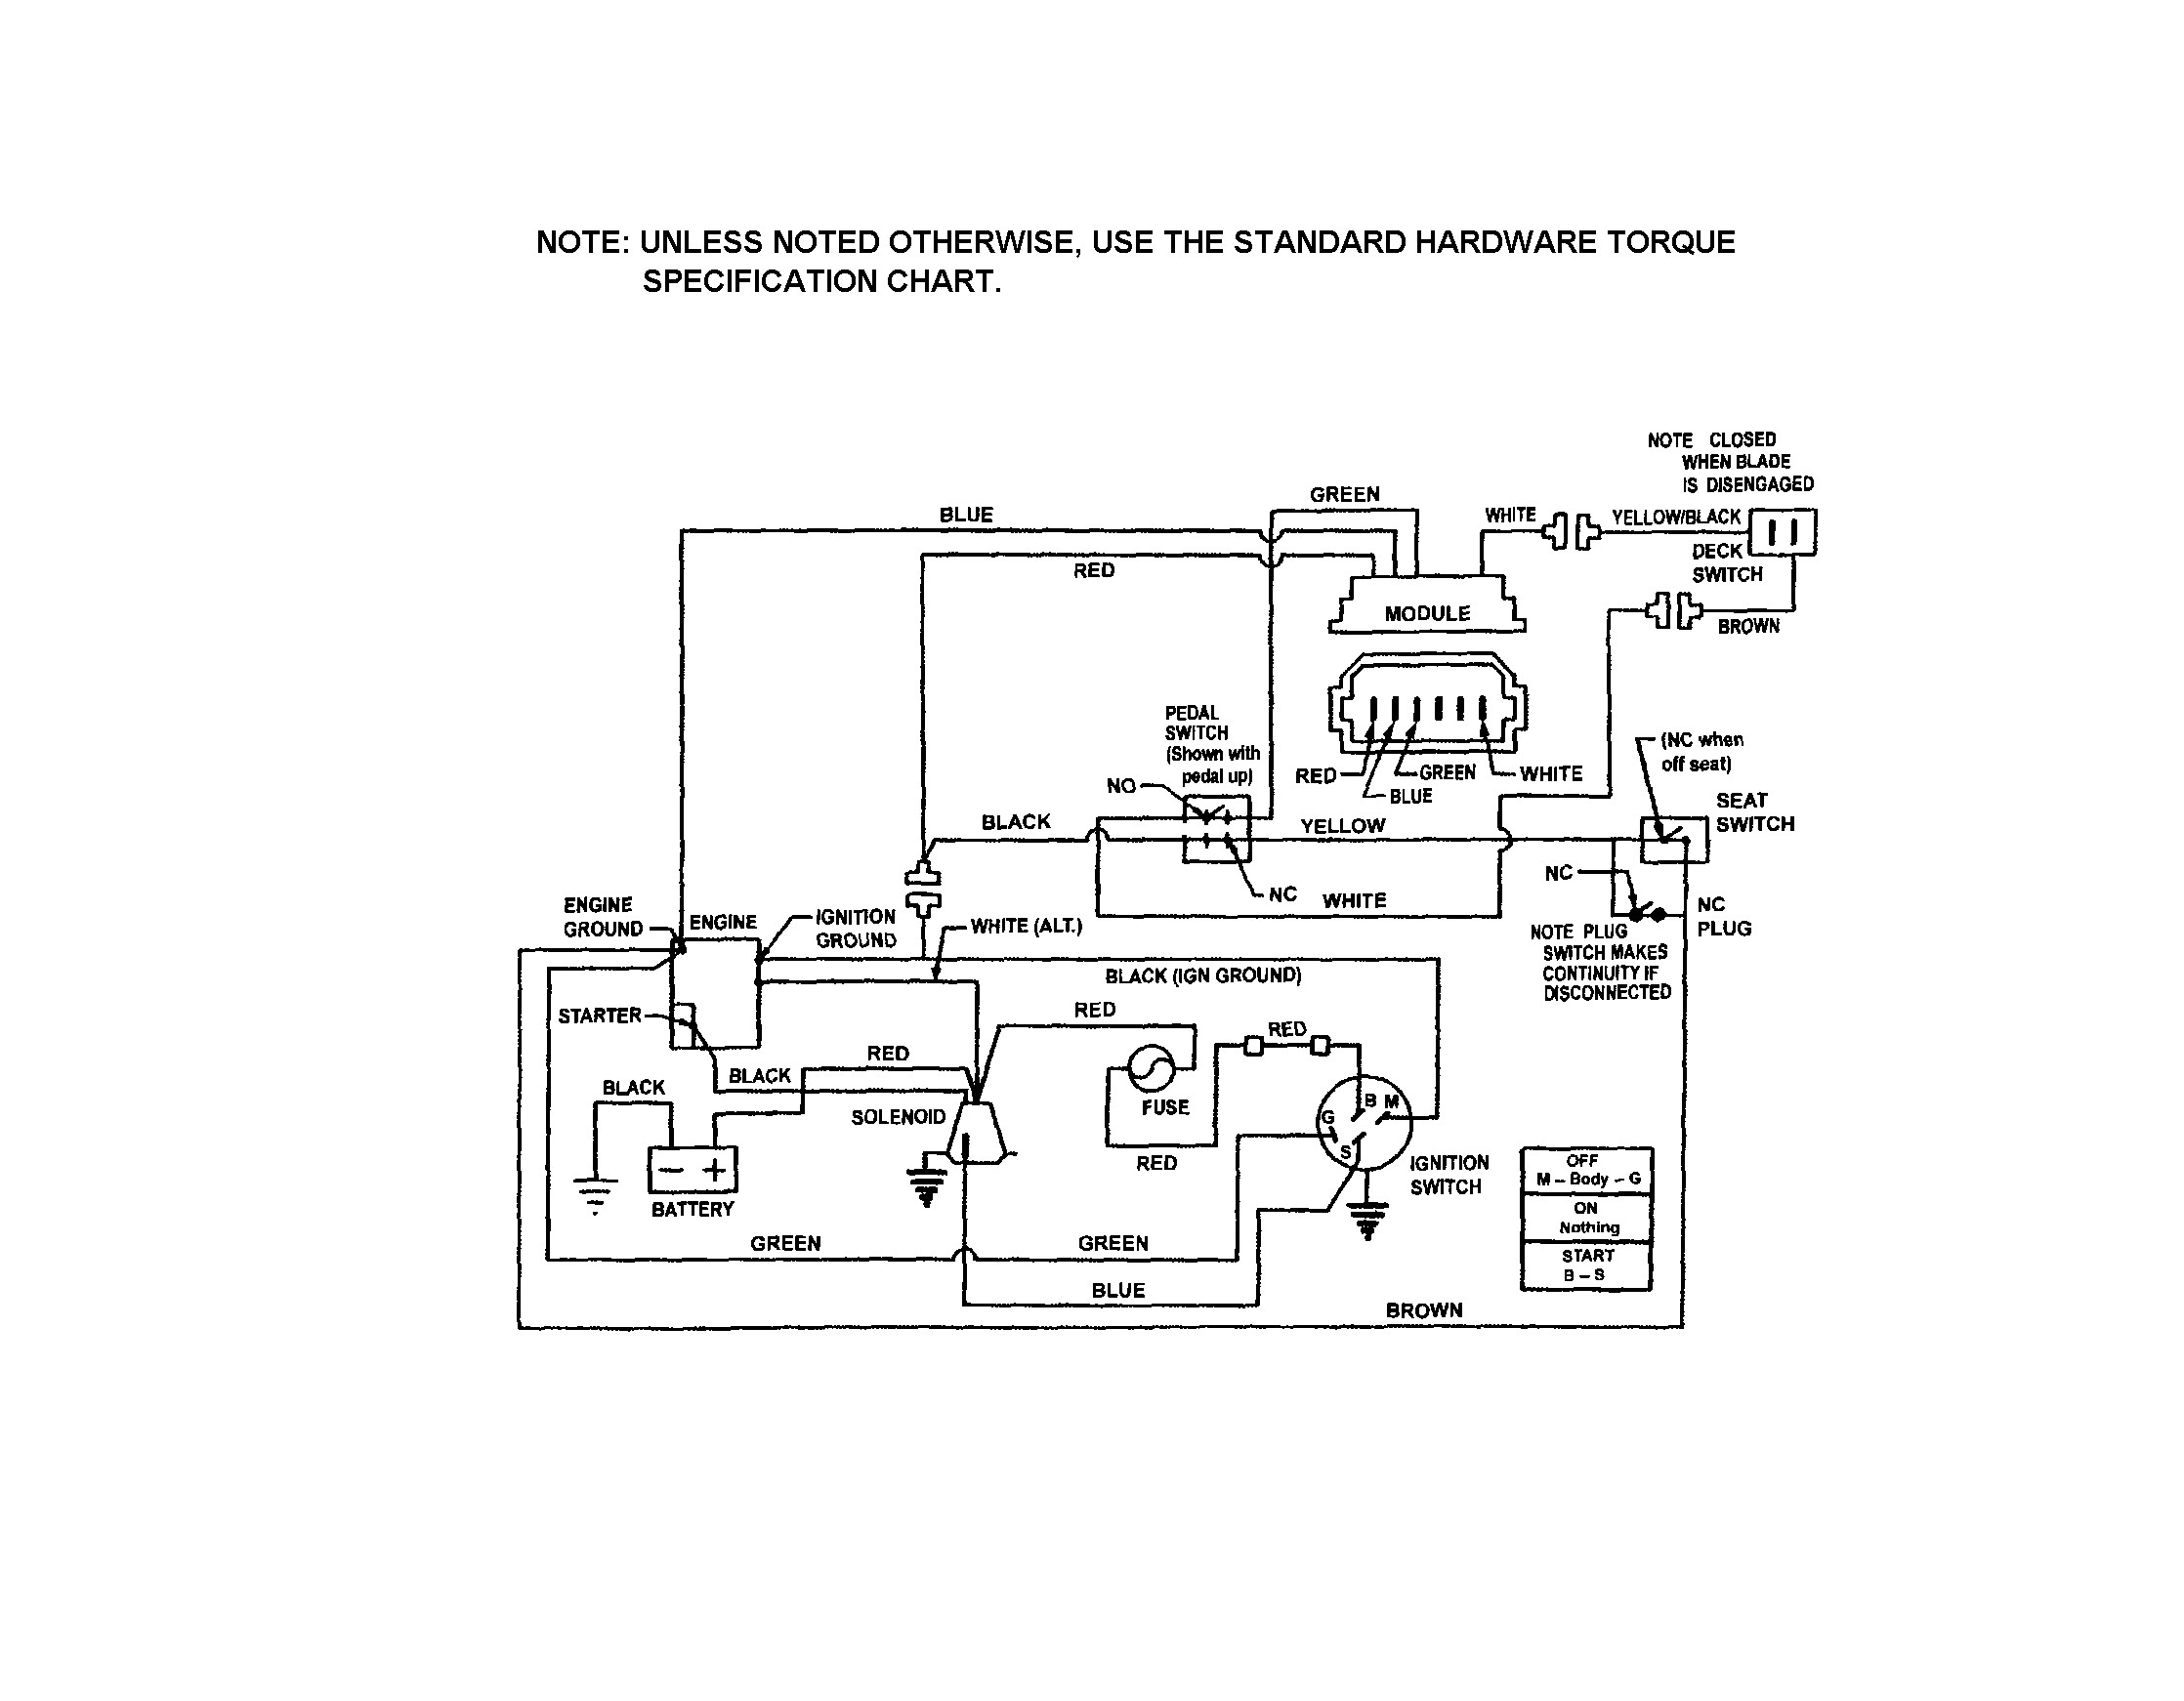 8 Hp Briggs Coil Wiring Diagram Free Picture | Wiring Diagram - Briggs And Stratton Magneto Wiring Diagram